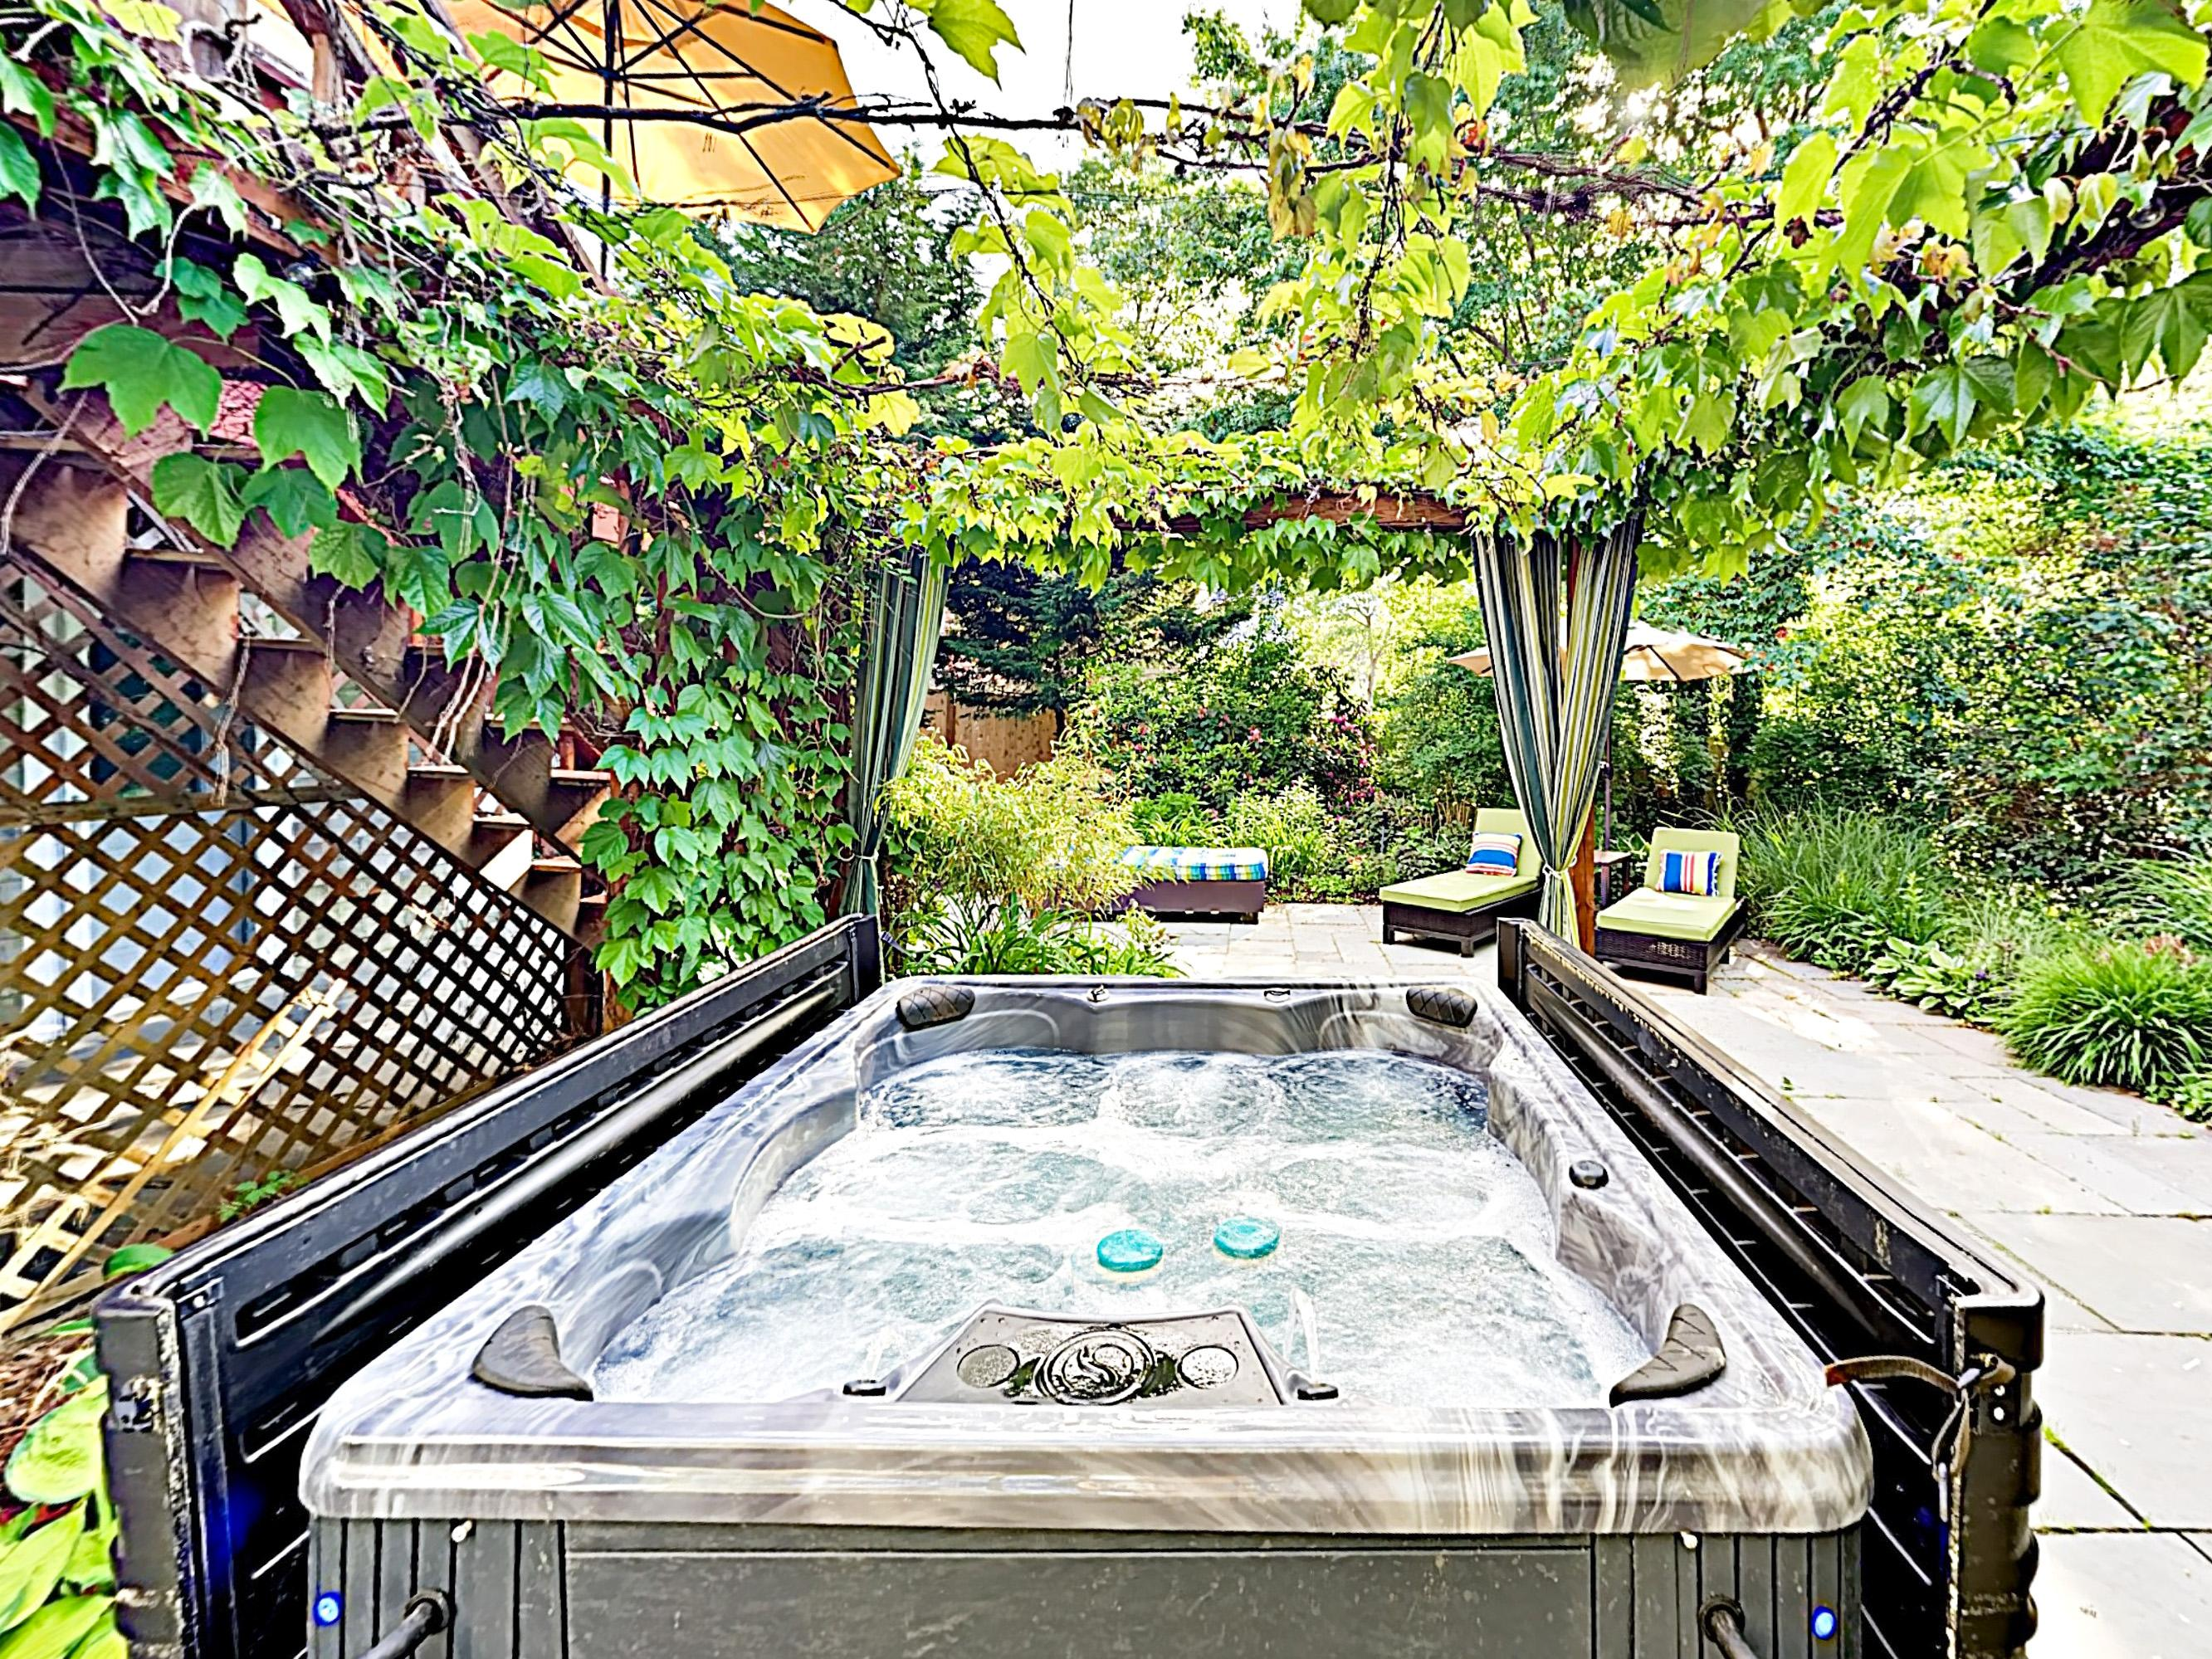 Take rejuvenating dips in the private hot tub.